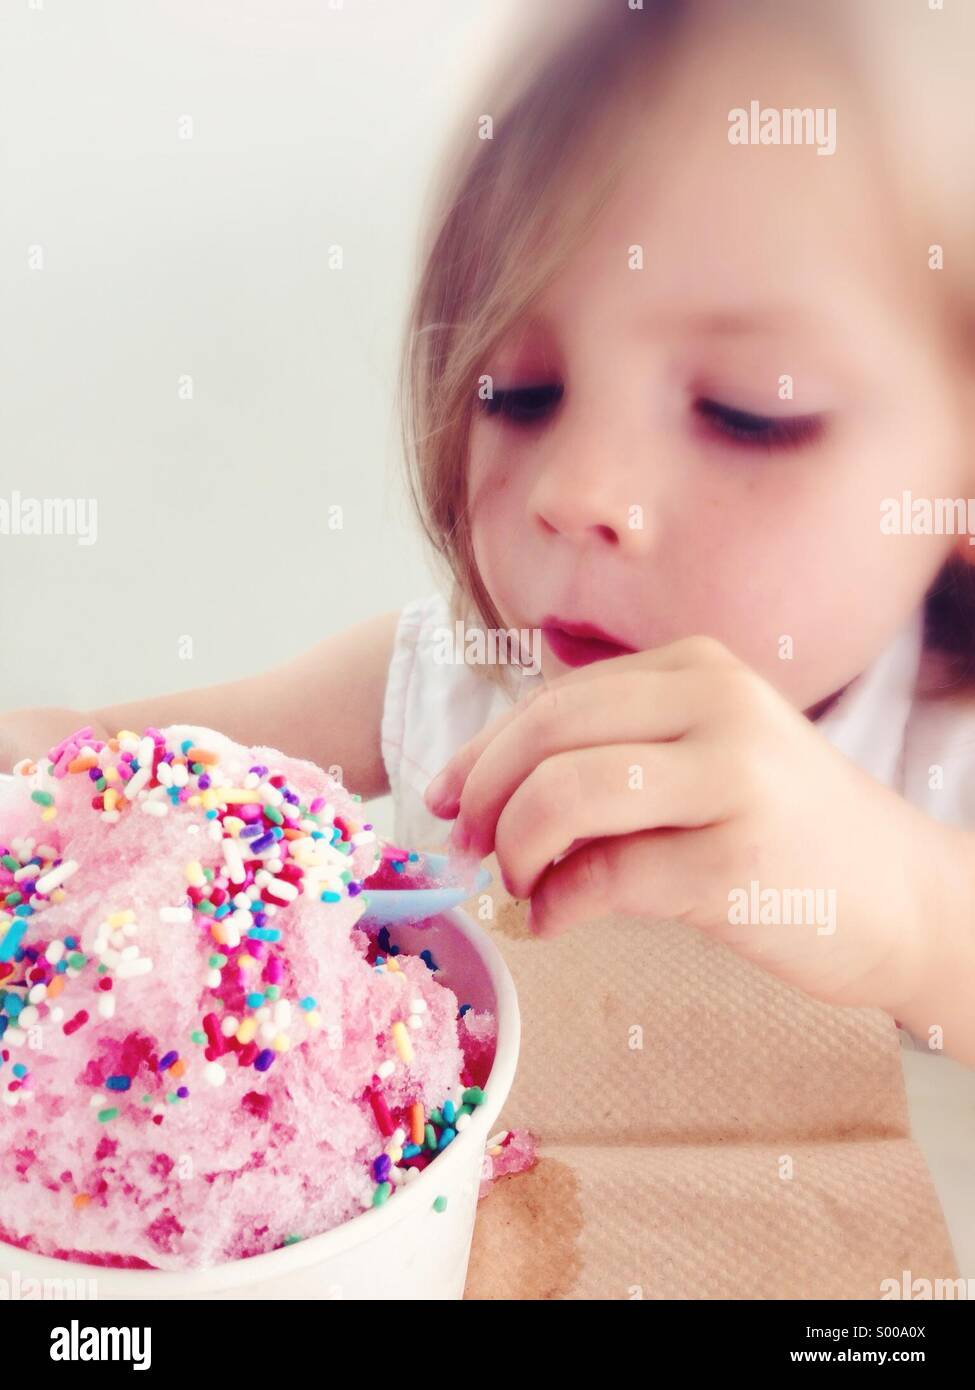 A little girl enjoys a frozen treat with sprinkles on top Stock Photo